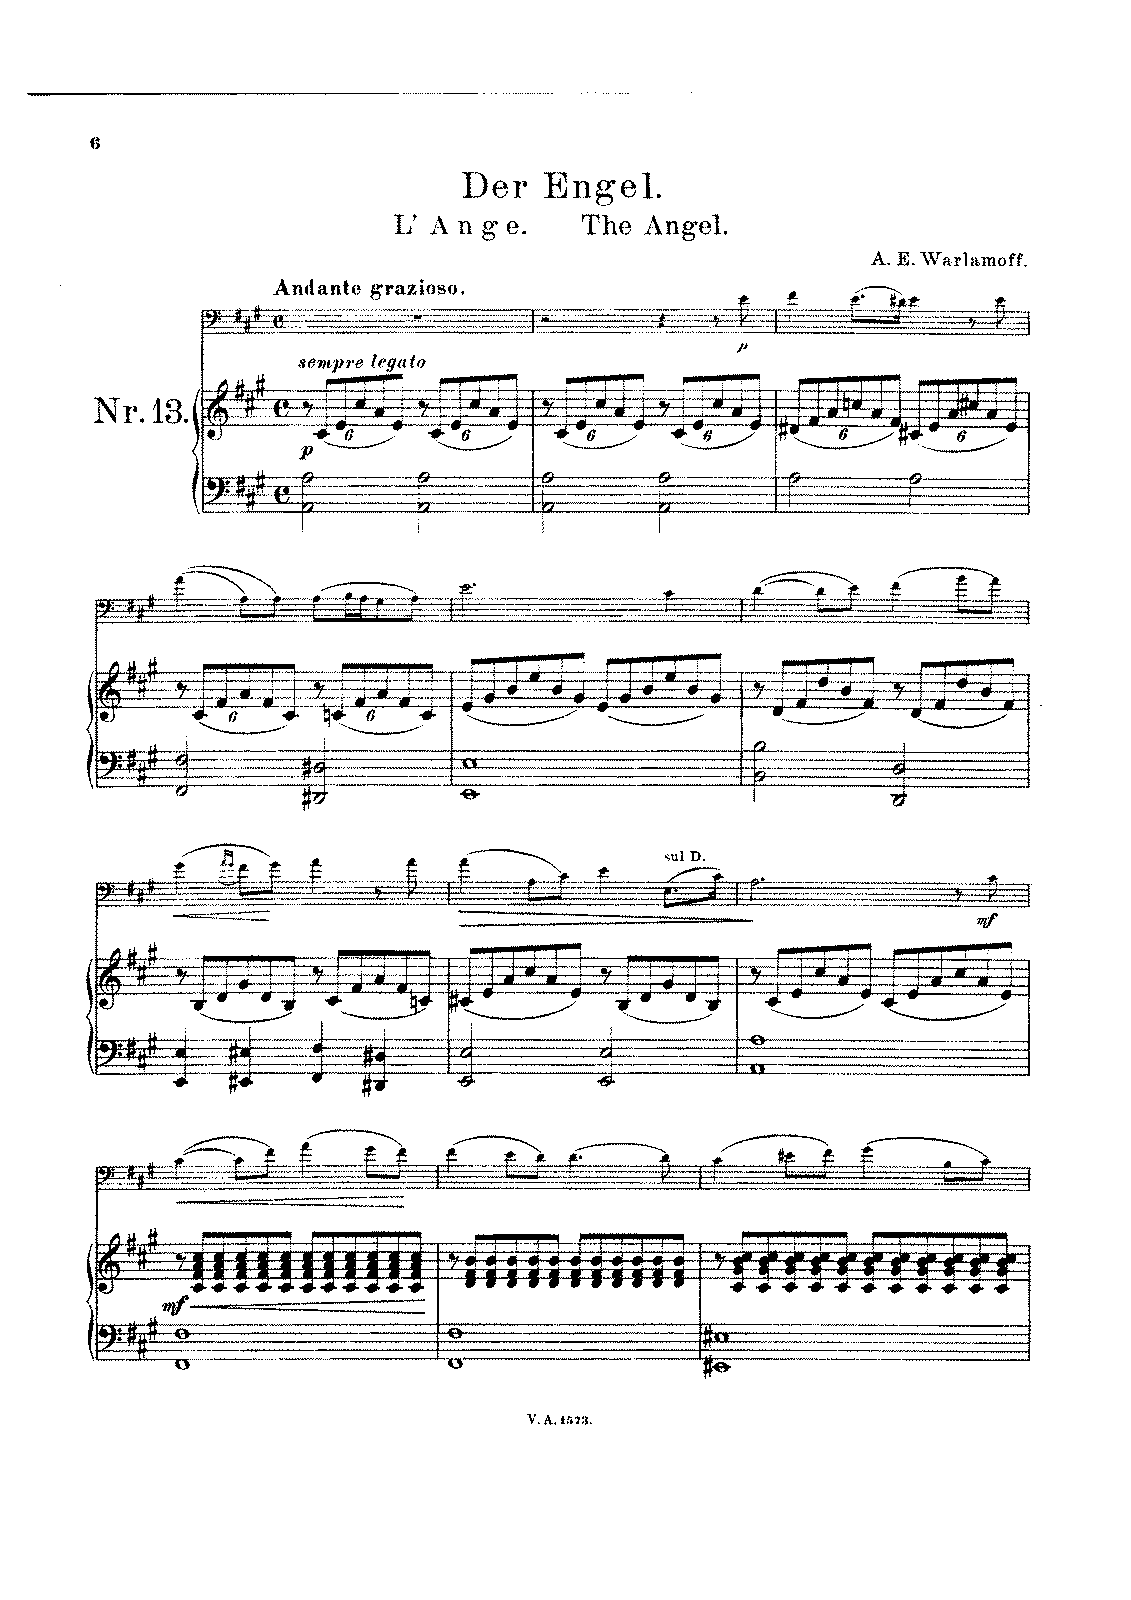 PMLP60552-Warlamoff - The Angel (Salter) for Cello and Piano score.pdf